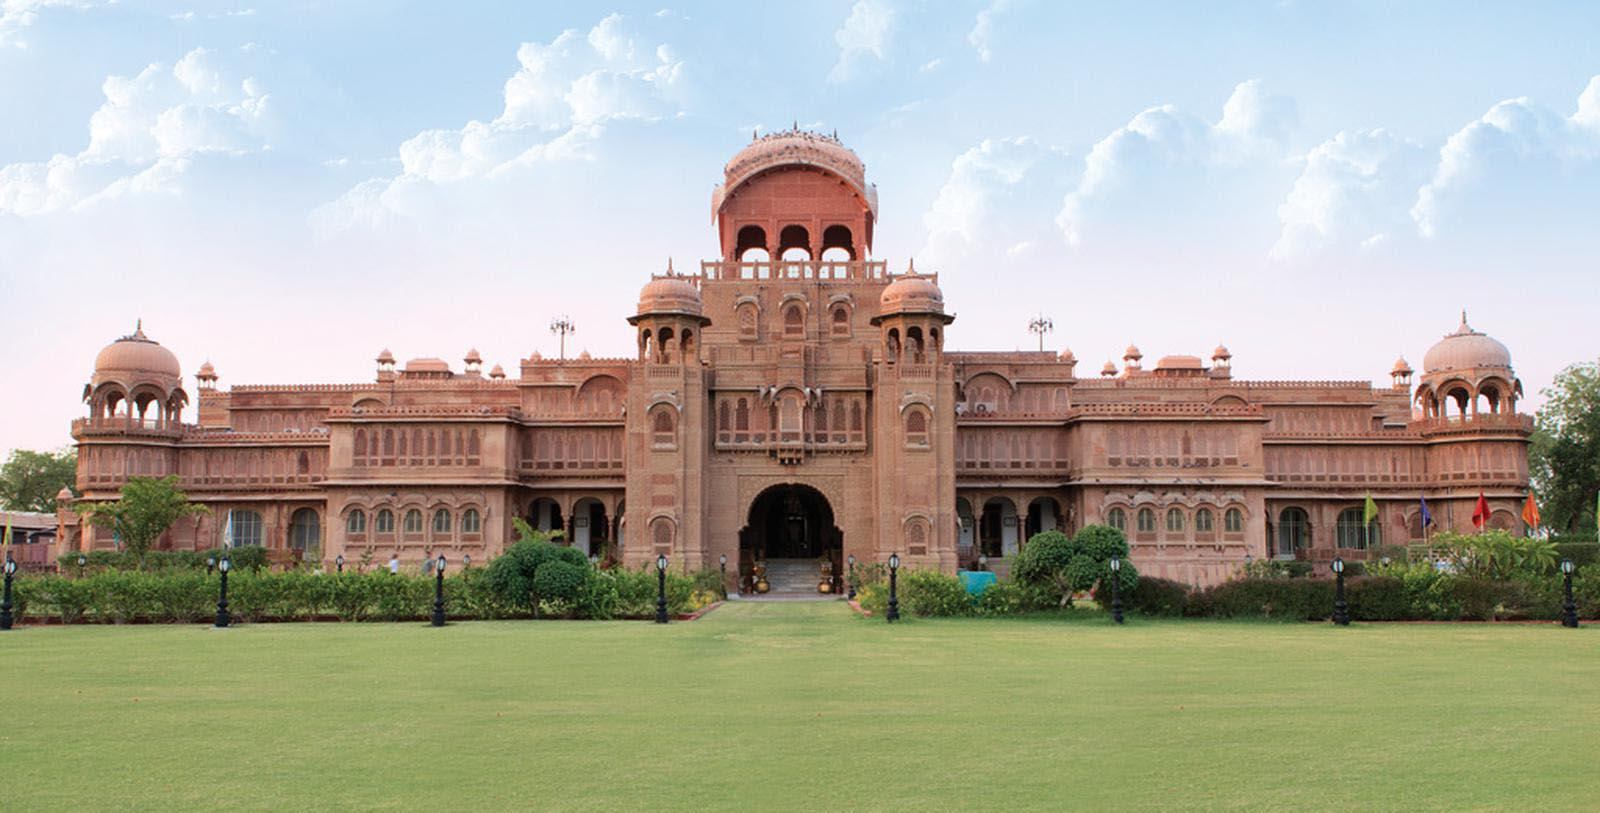 Image of Hotel Exterior Laxmi Niwas Palace, 1904, Member of Historic Hotels Worldwide, in Bikaner, India, Special Offers, Discounted Rates, Families, Romantic Escape, Honeymoons, Anniversaries, Reunions